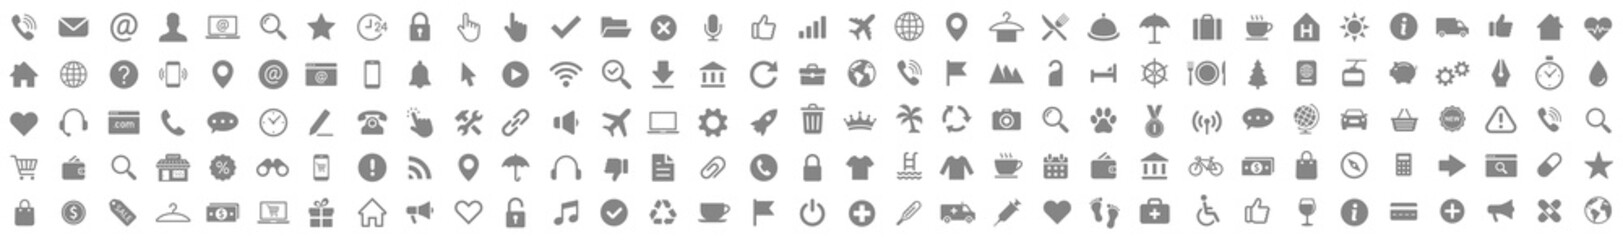 Icons set. Business Shopping Finance Tourism Web icons collection. Vector